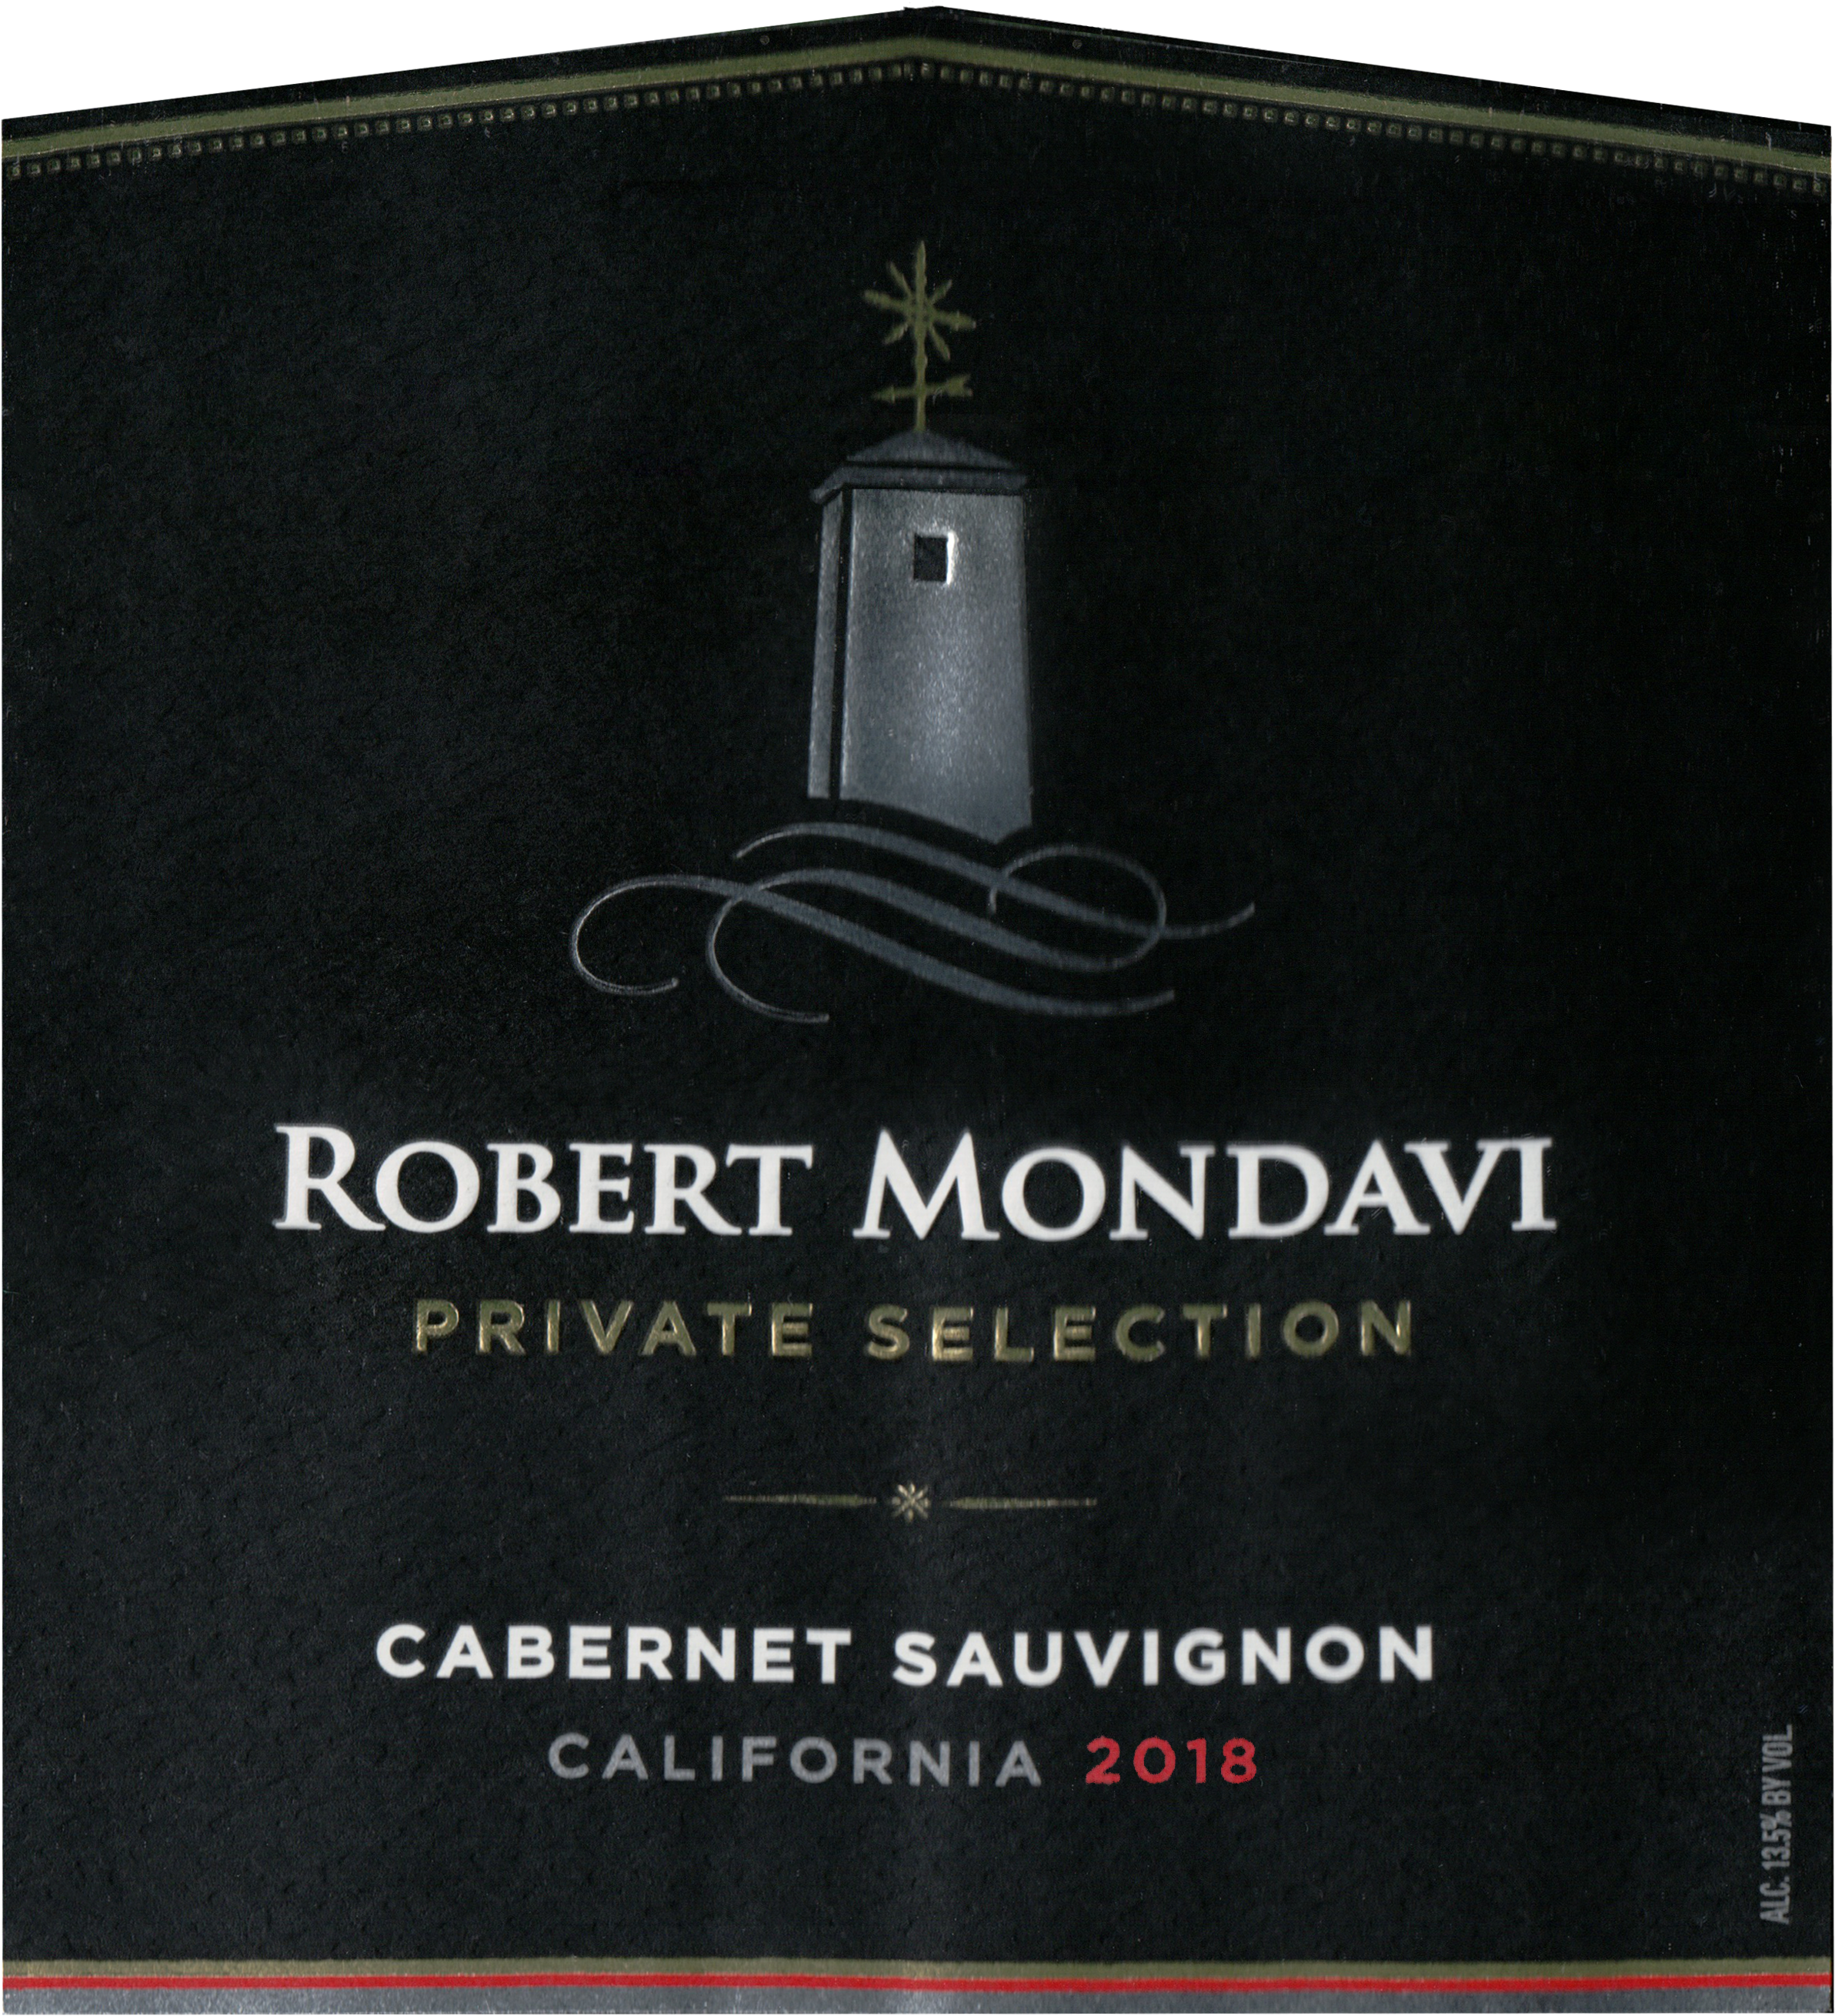 Robert Mondavi Private Selection Cabernet Sauvignon Central Coast 2018